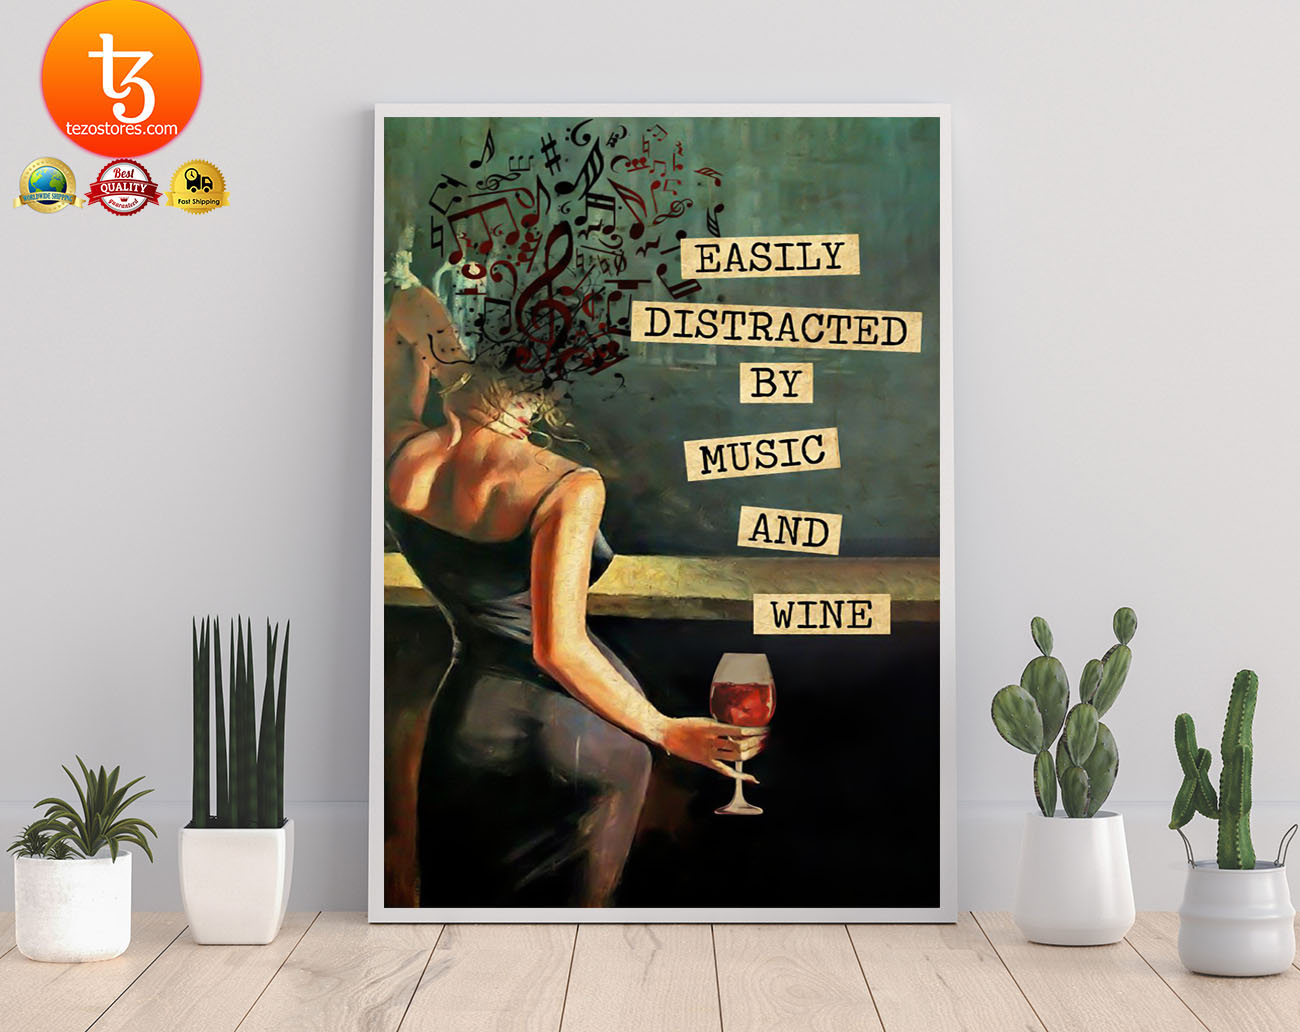 Vintage easily distracted by music and wine poster 23